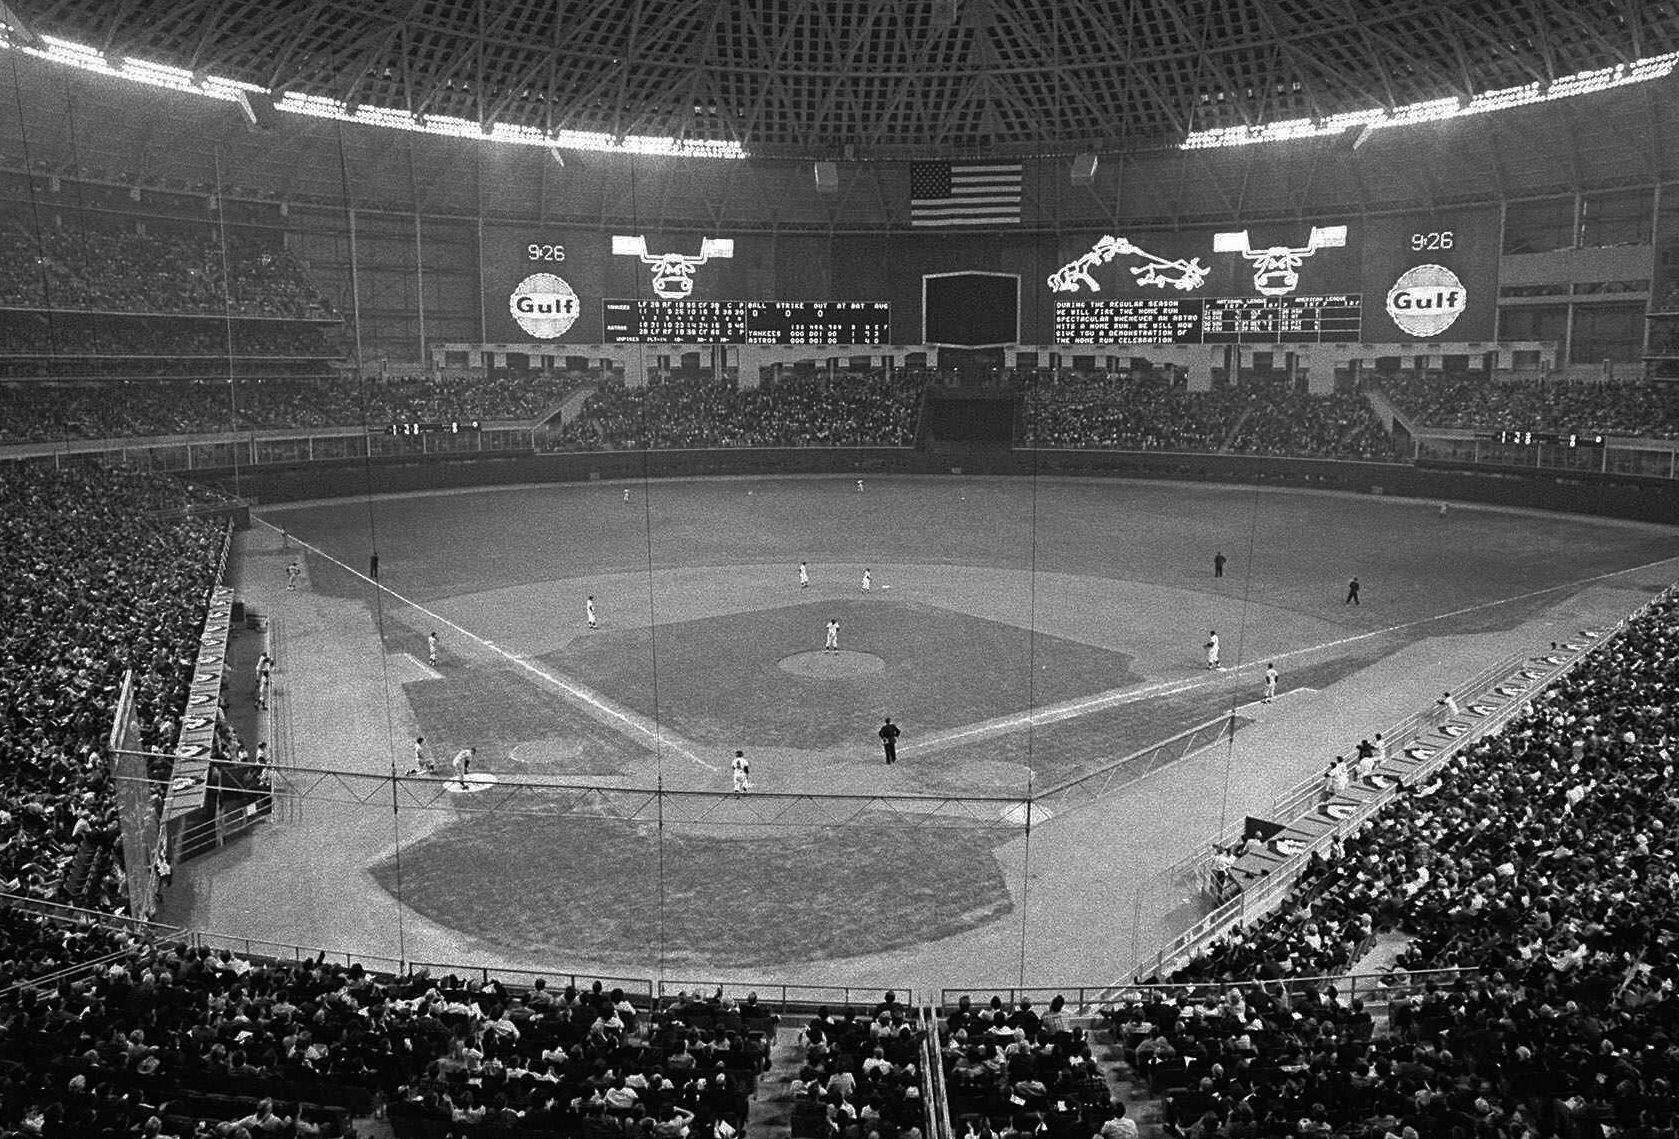 The Houston Astrodome is seen as the Astros host the New York Yankees in this April 10, 1965 photo. The Astros played their first game in the Astrodome April 9, 1965.